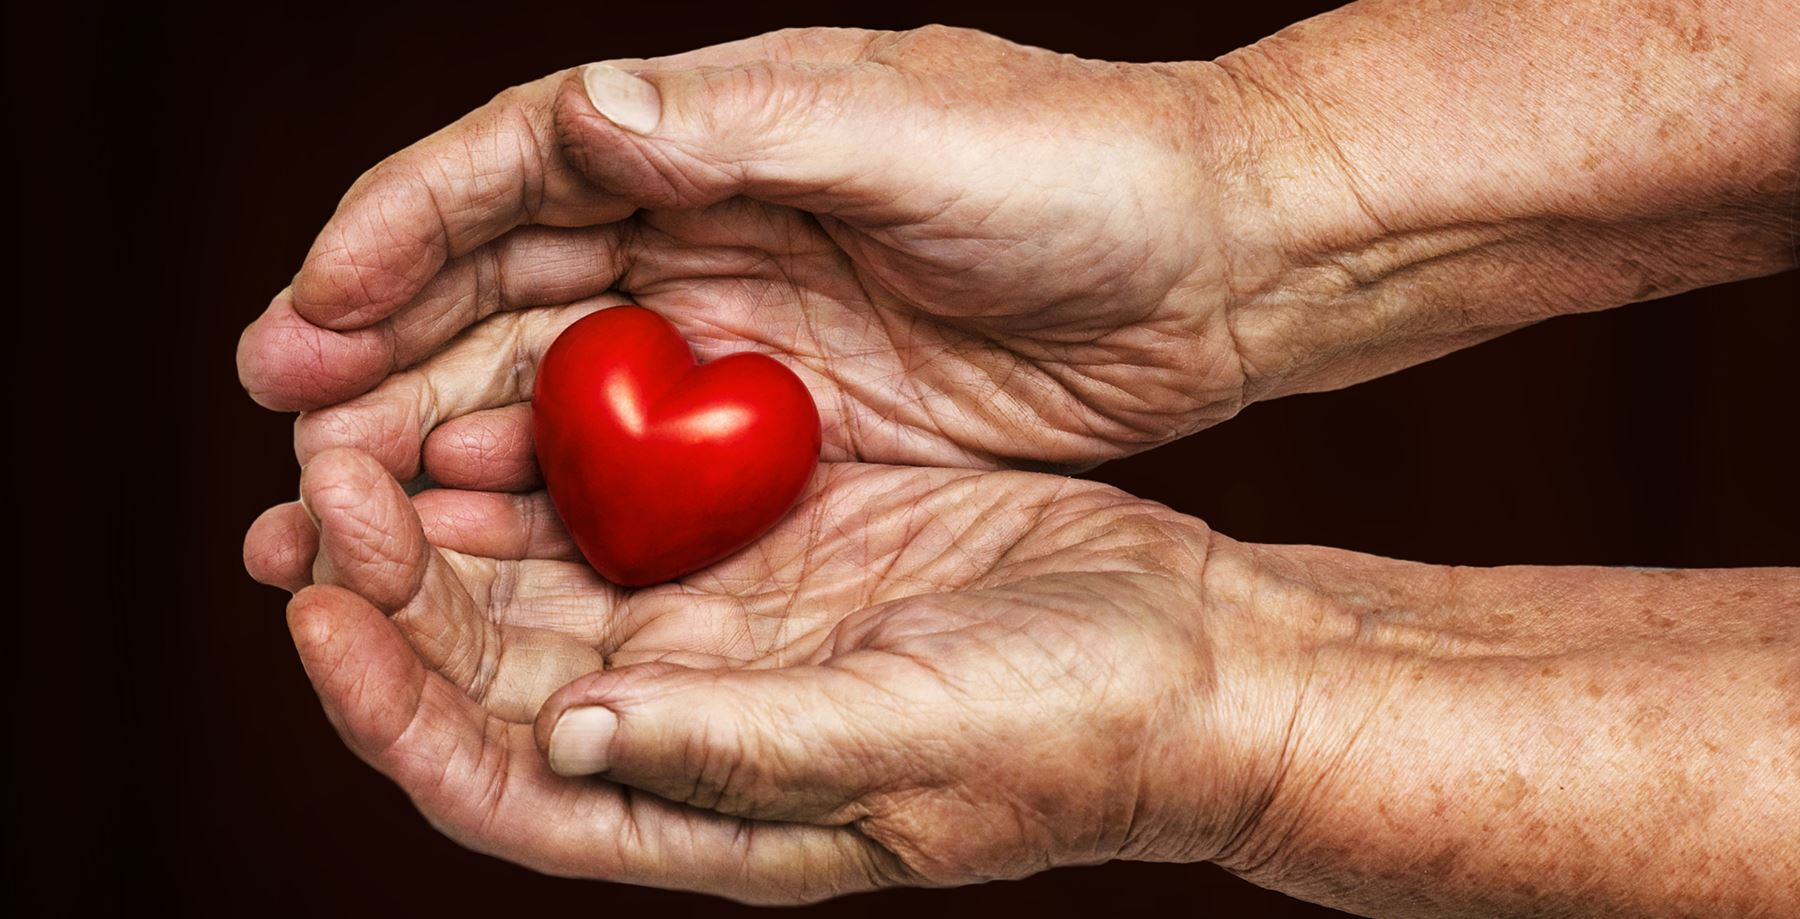 Heart in the Center of Hands